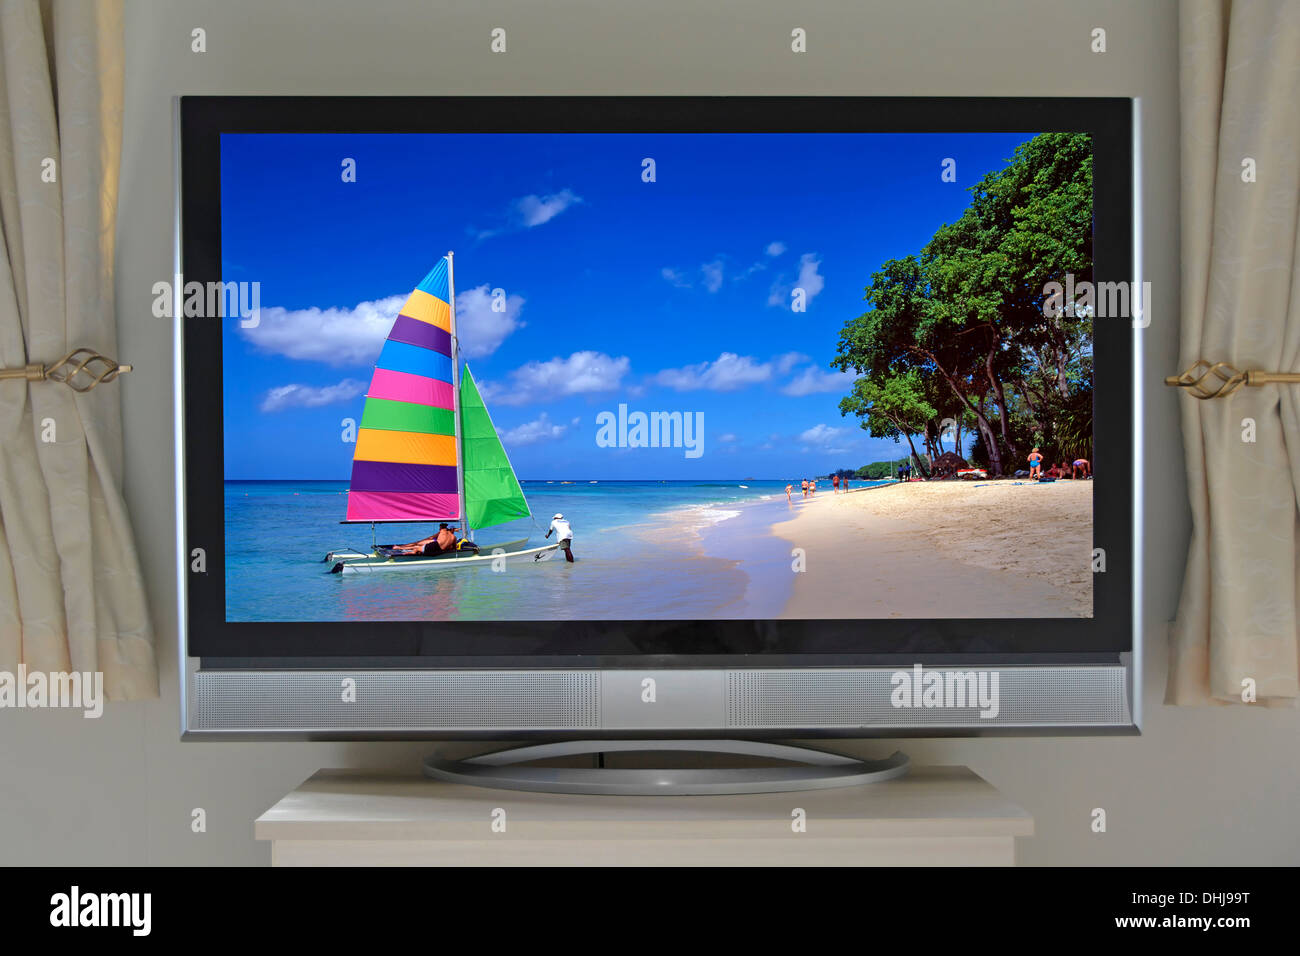 Flat panel 40' (diagonal) LCD television in room setting with photographers own copyright image inserted onto TV (see Alamy additional info panel) - Stock Image